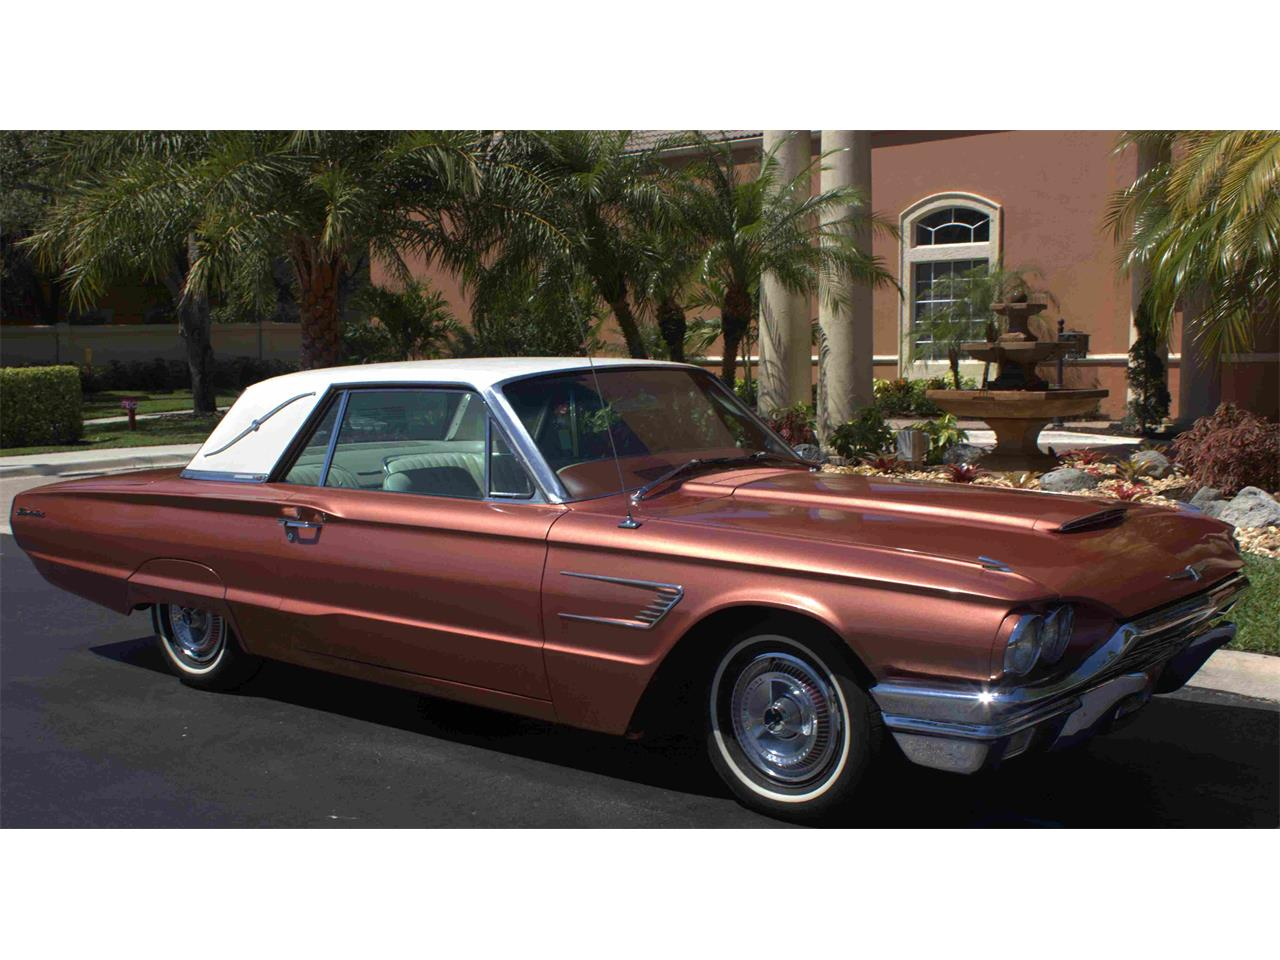 Large picture of 65 thunderbird o8jf